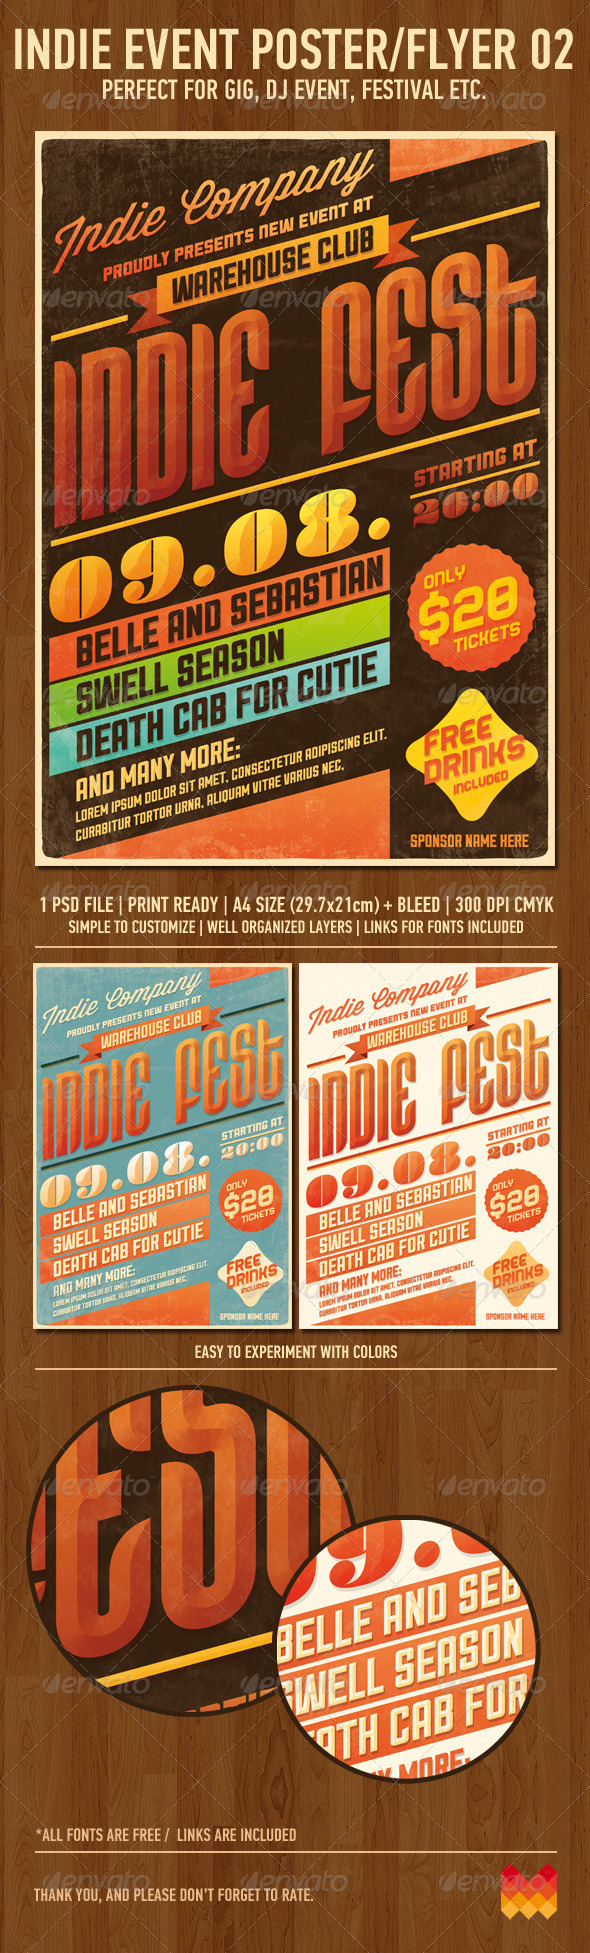 GraphicRiver Indie Event Flyer Poster No2 2600990